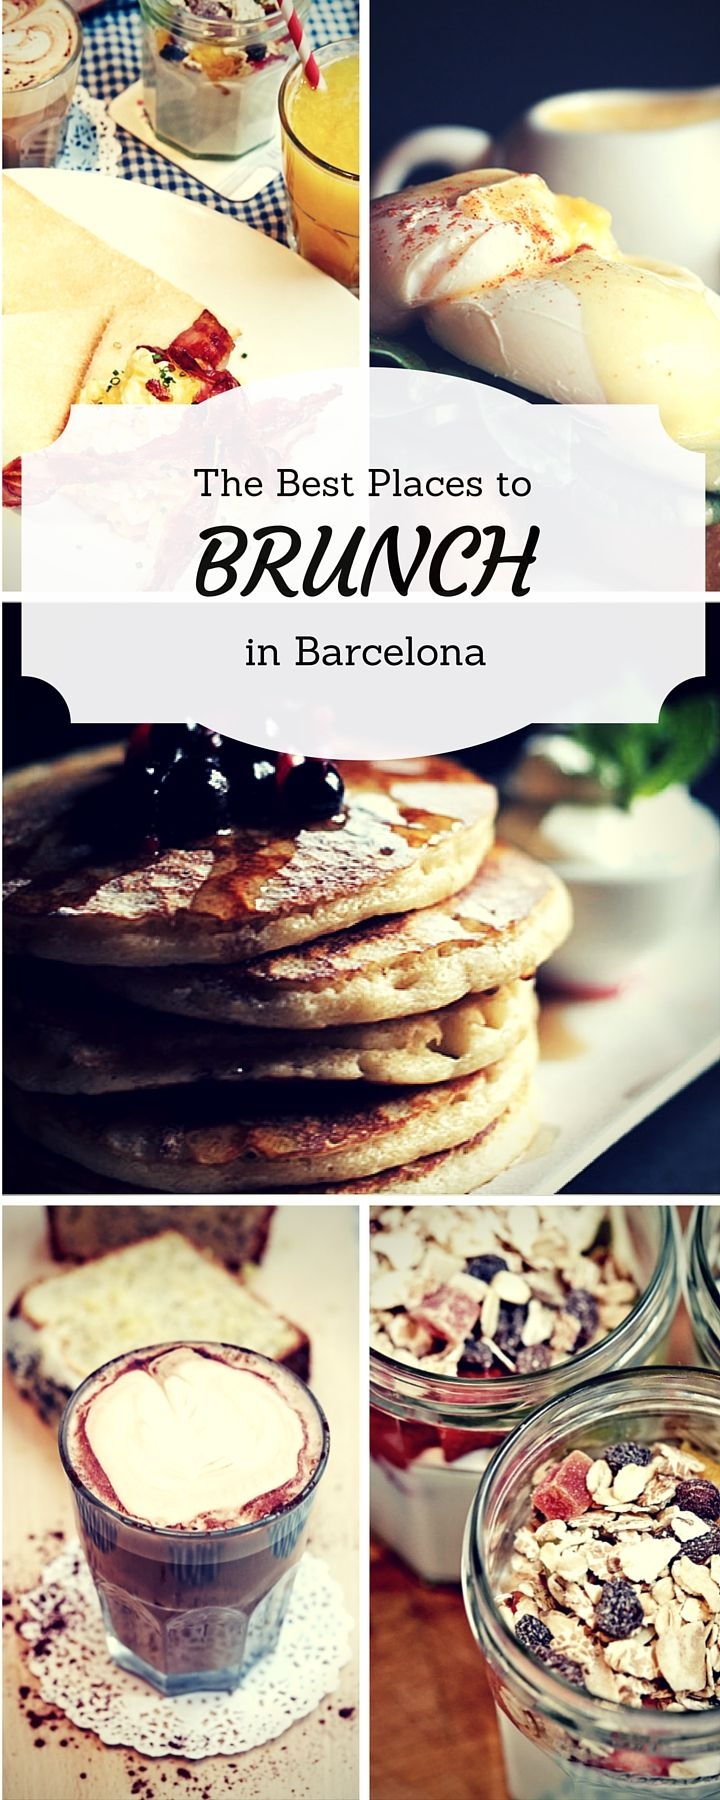 The best places to start the day with a great brunch in the the beautiful city of Barcelona